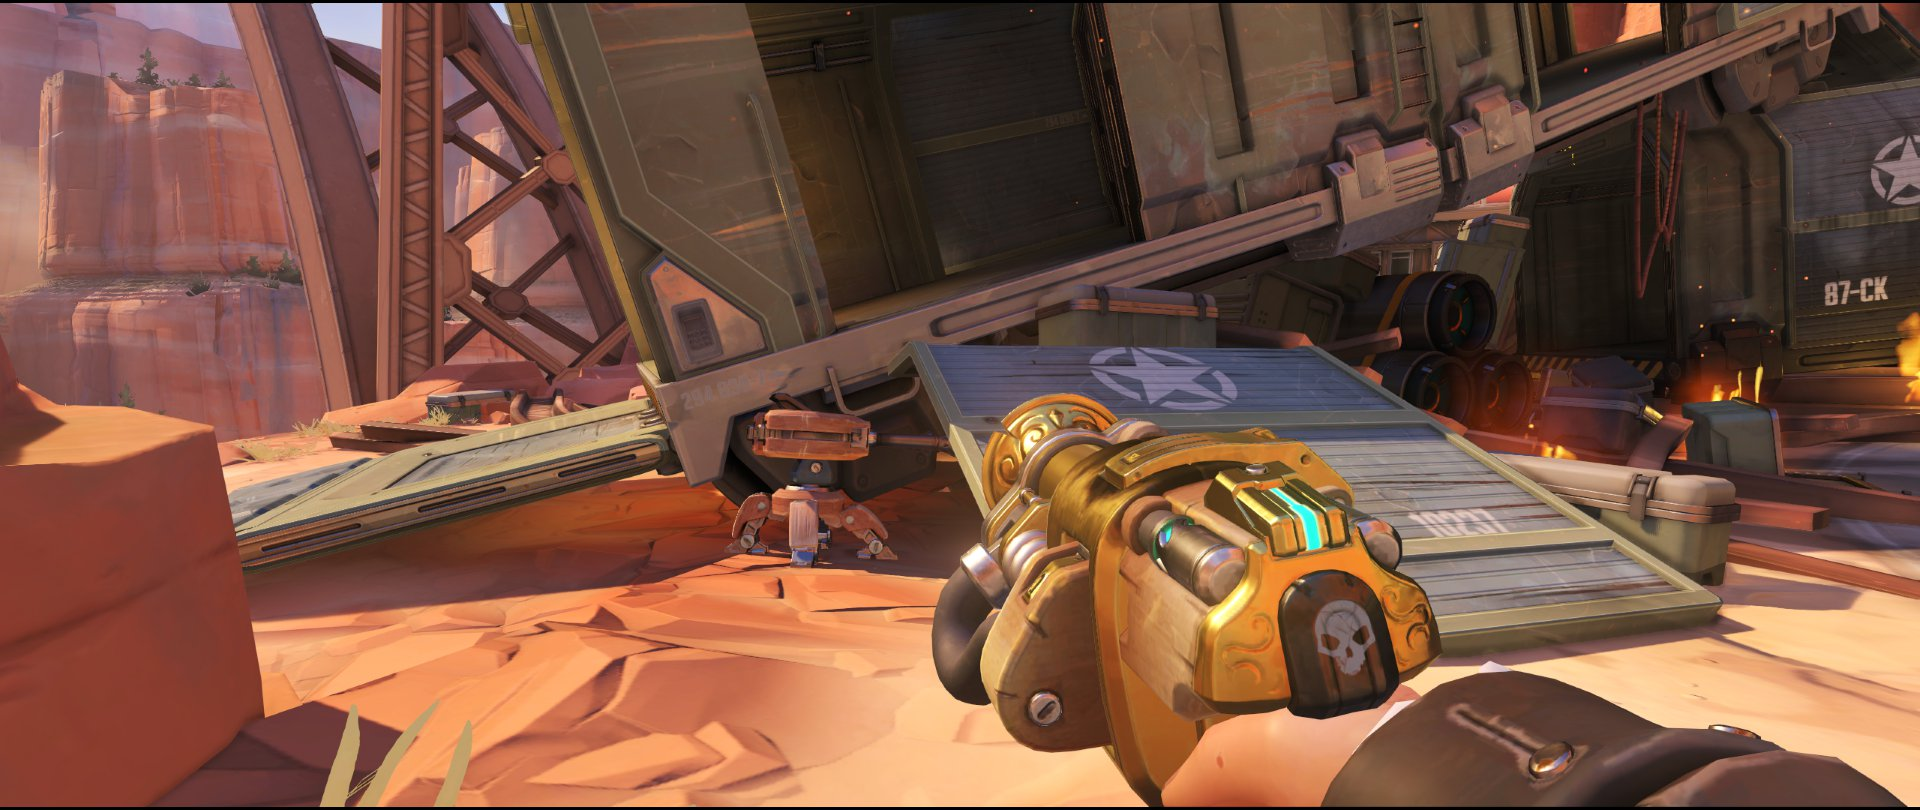 Side+ramp+start+turret+placement+Torbjorn+Route+66+Overwatch